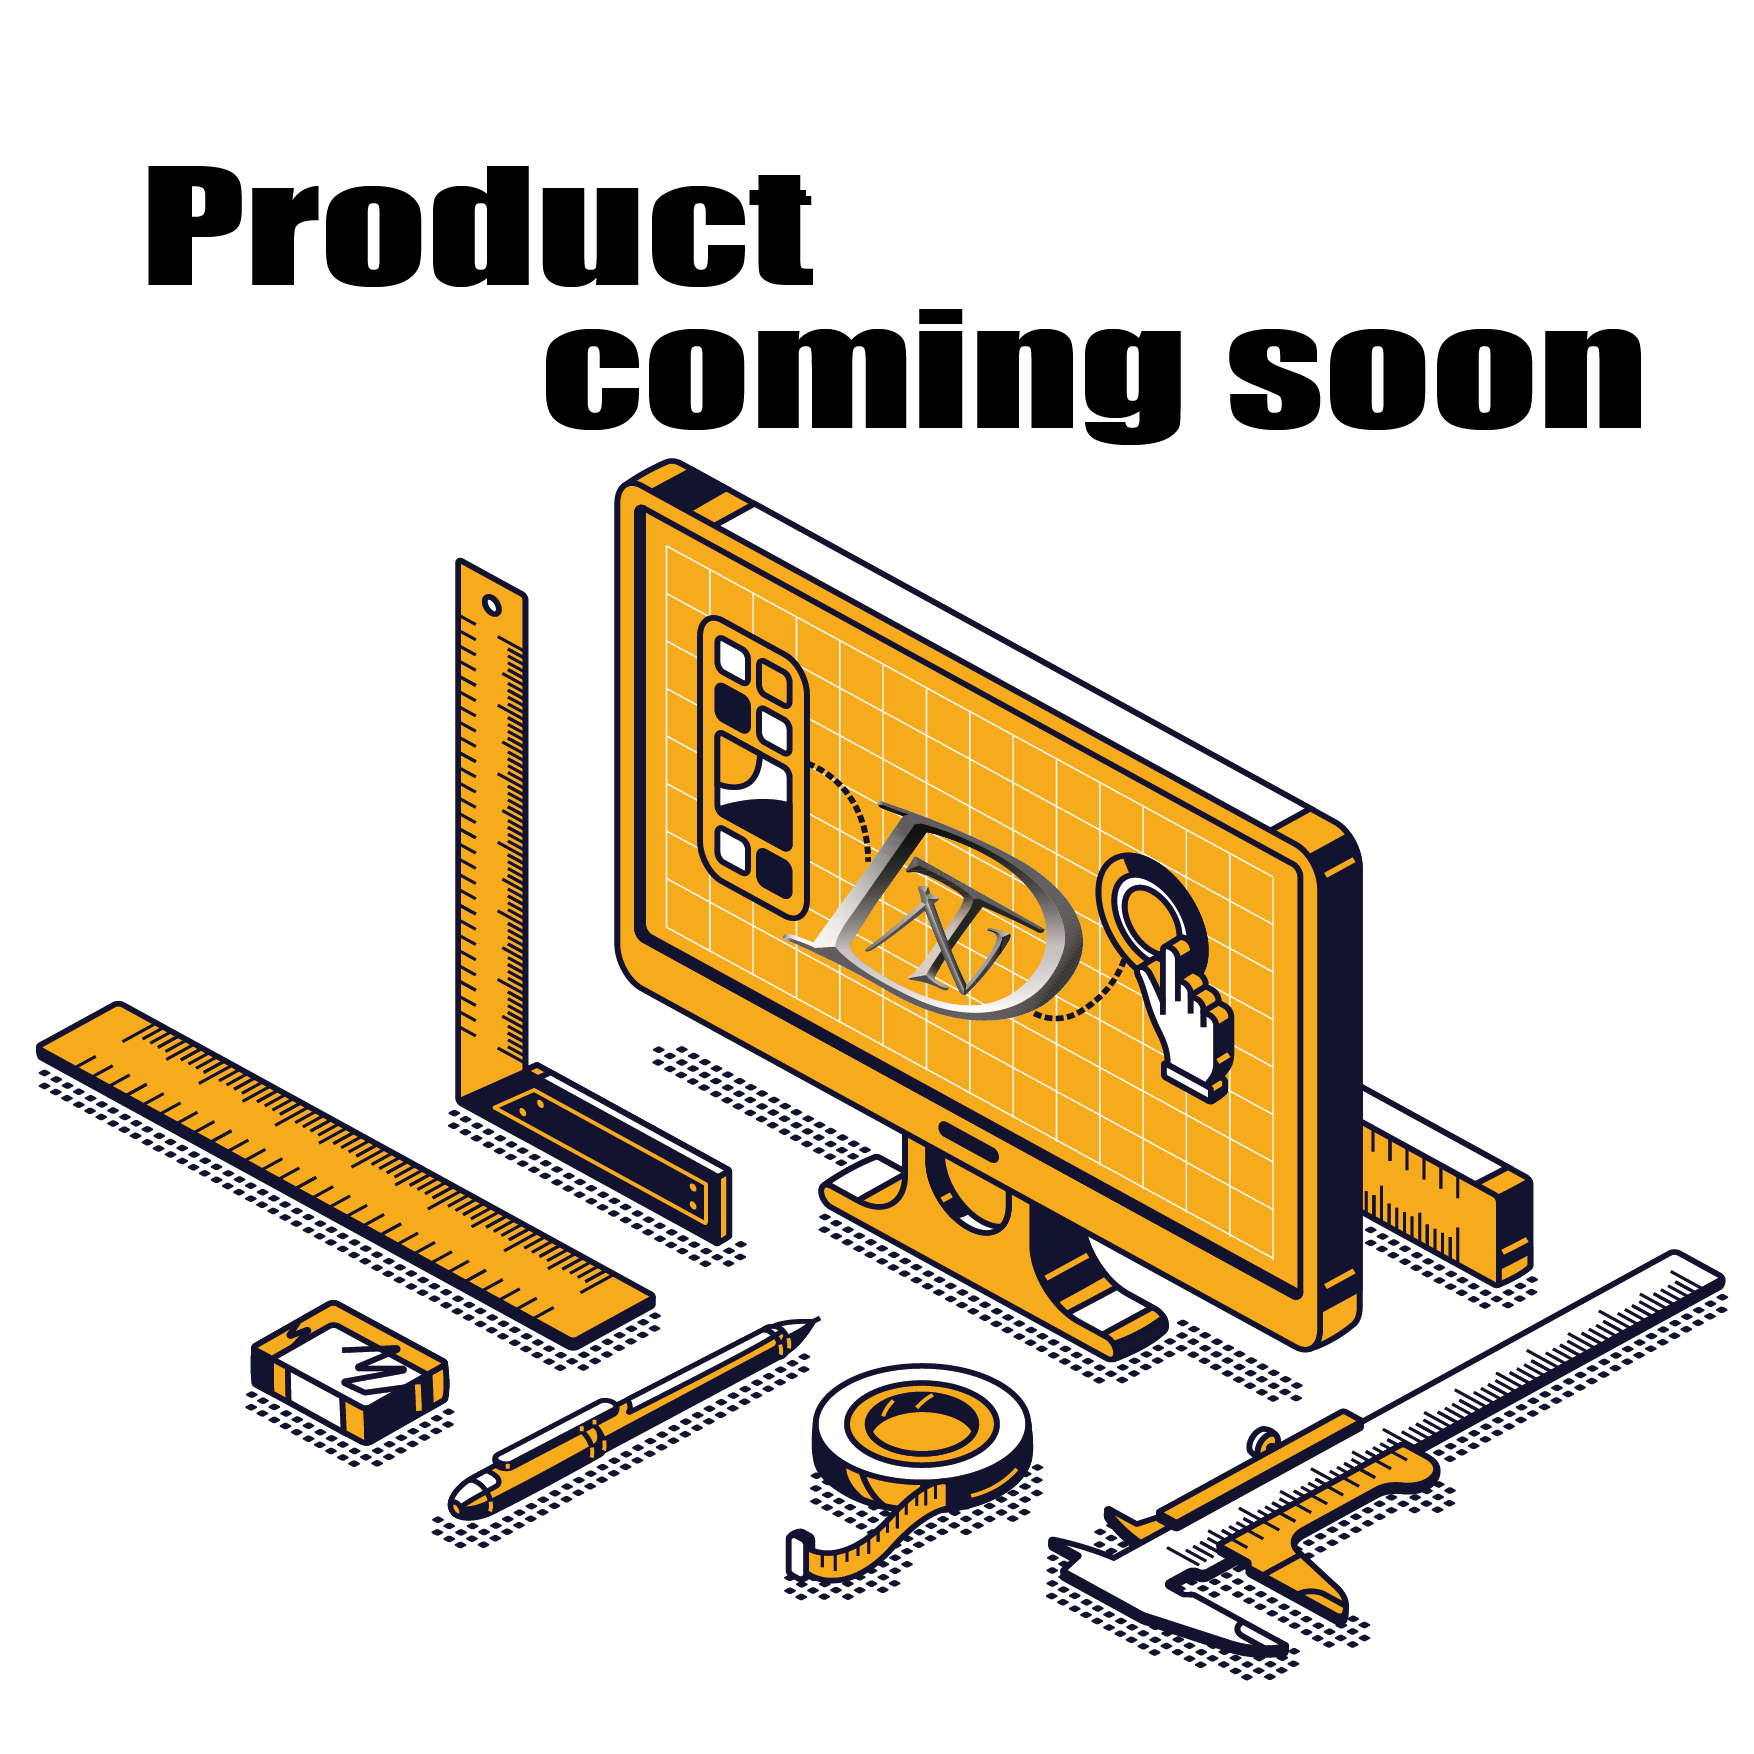 New products are being updated